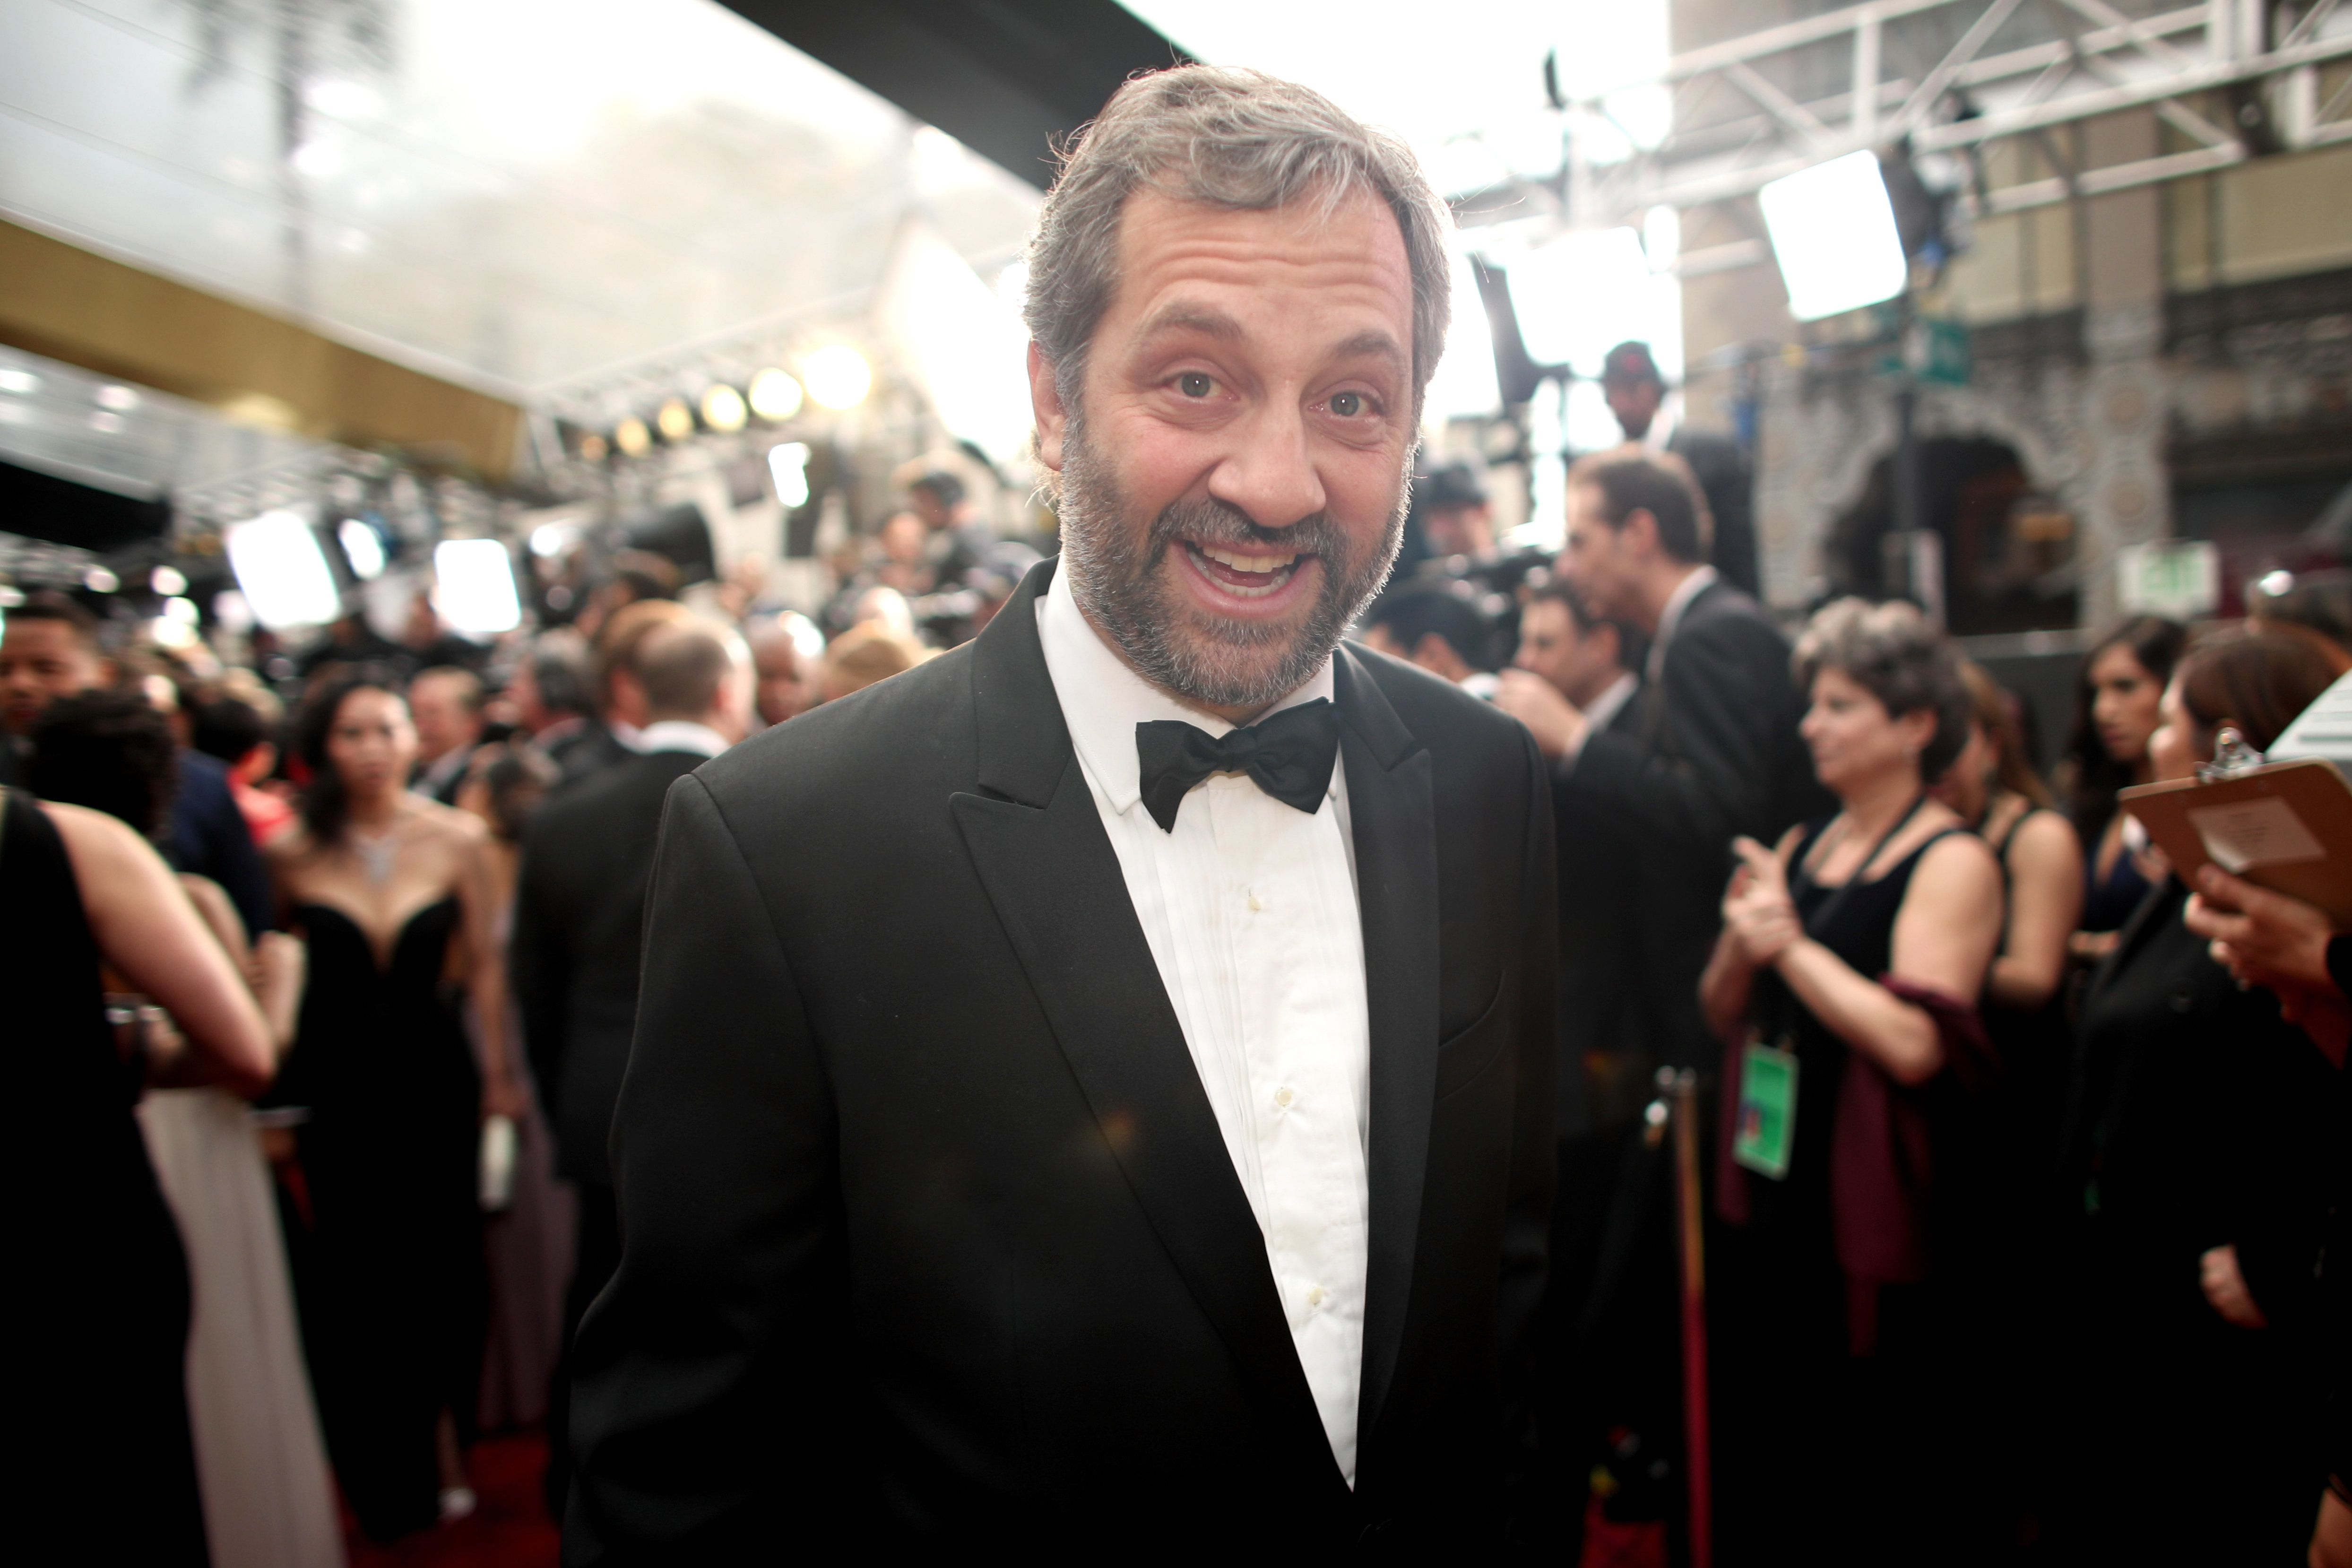 HOLLYWOOD, CA - FEBRUARY 26:   Writer/director Judd Apatow attends the 89th Annual Academy Awards at Hollywood & Highland Center on February 26, 2017 in Hollywood, California.  (Photo by Christopher Polk/Getty Images)